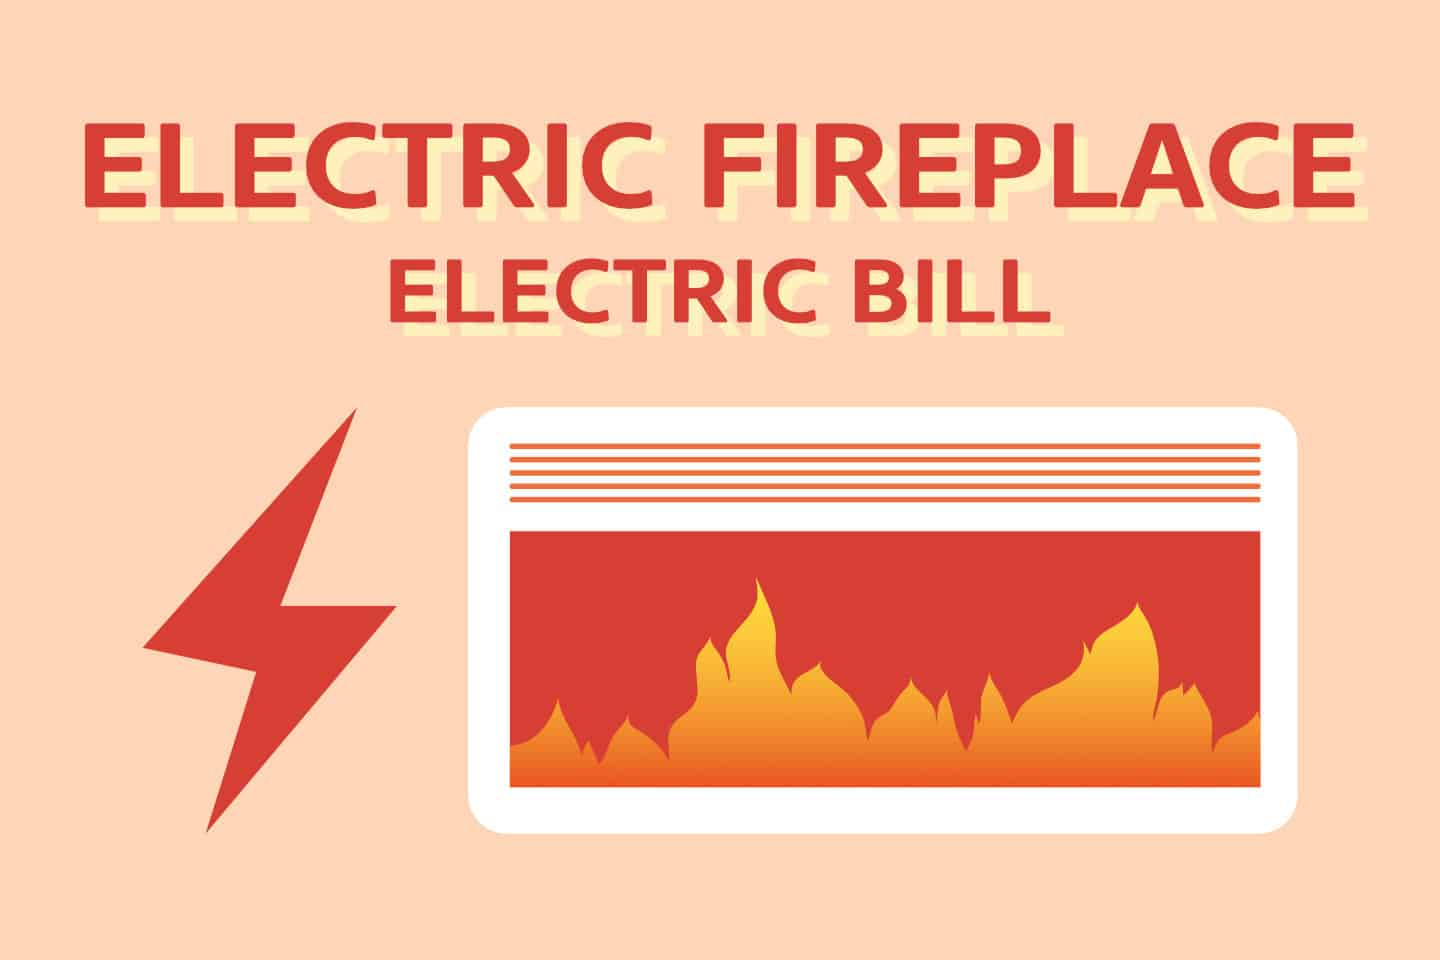 How Much Will an Electric Fireplace Raise My Electric Bill?